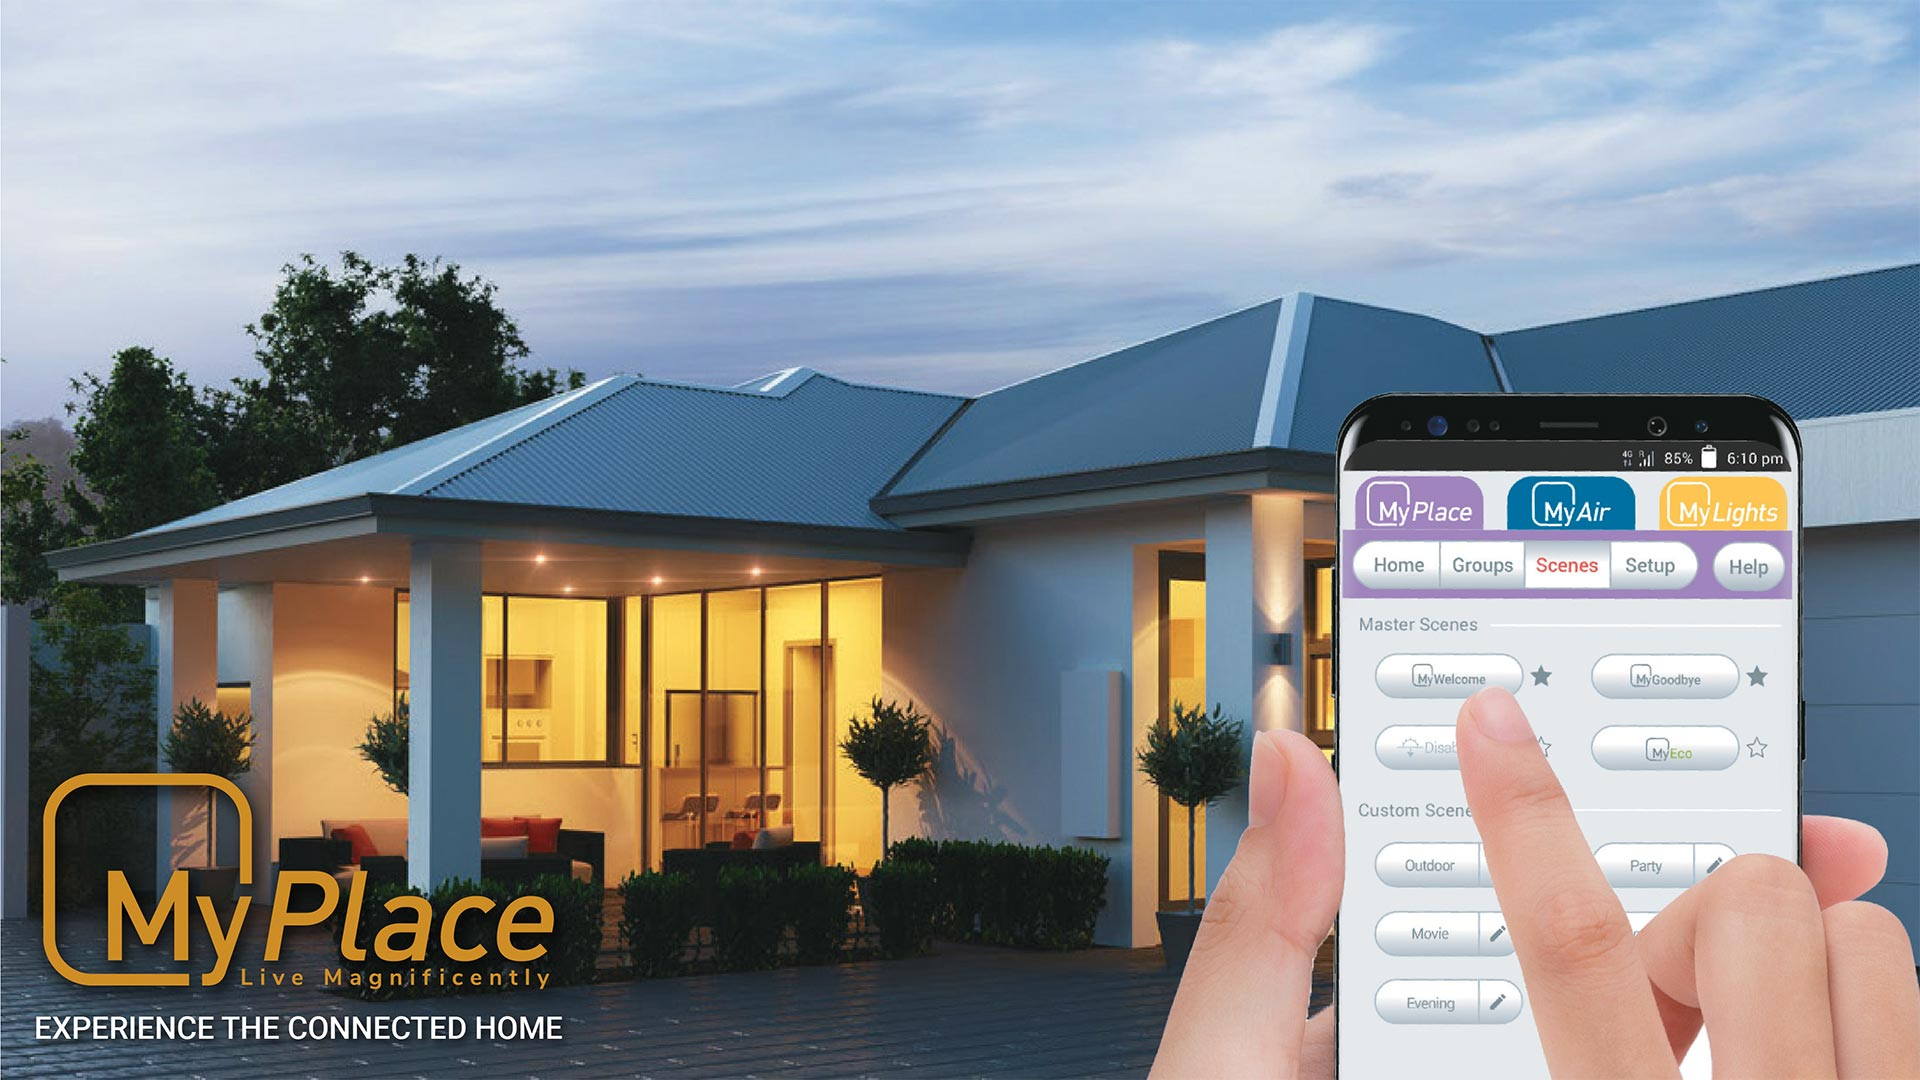 Smart Home and Home automation products